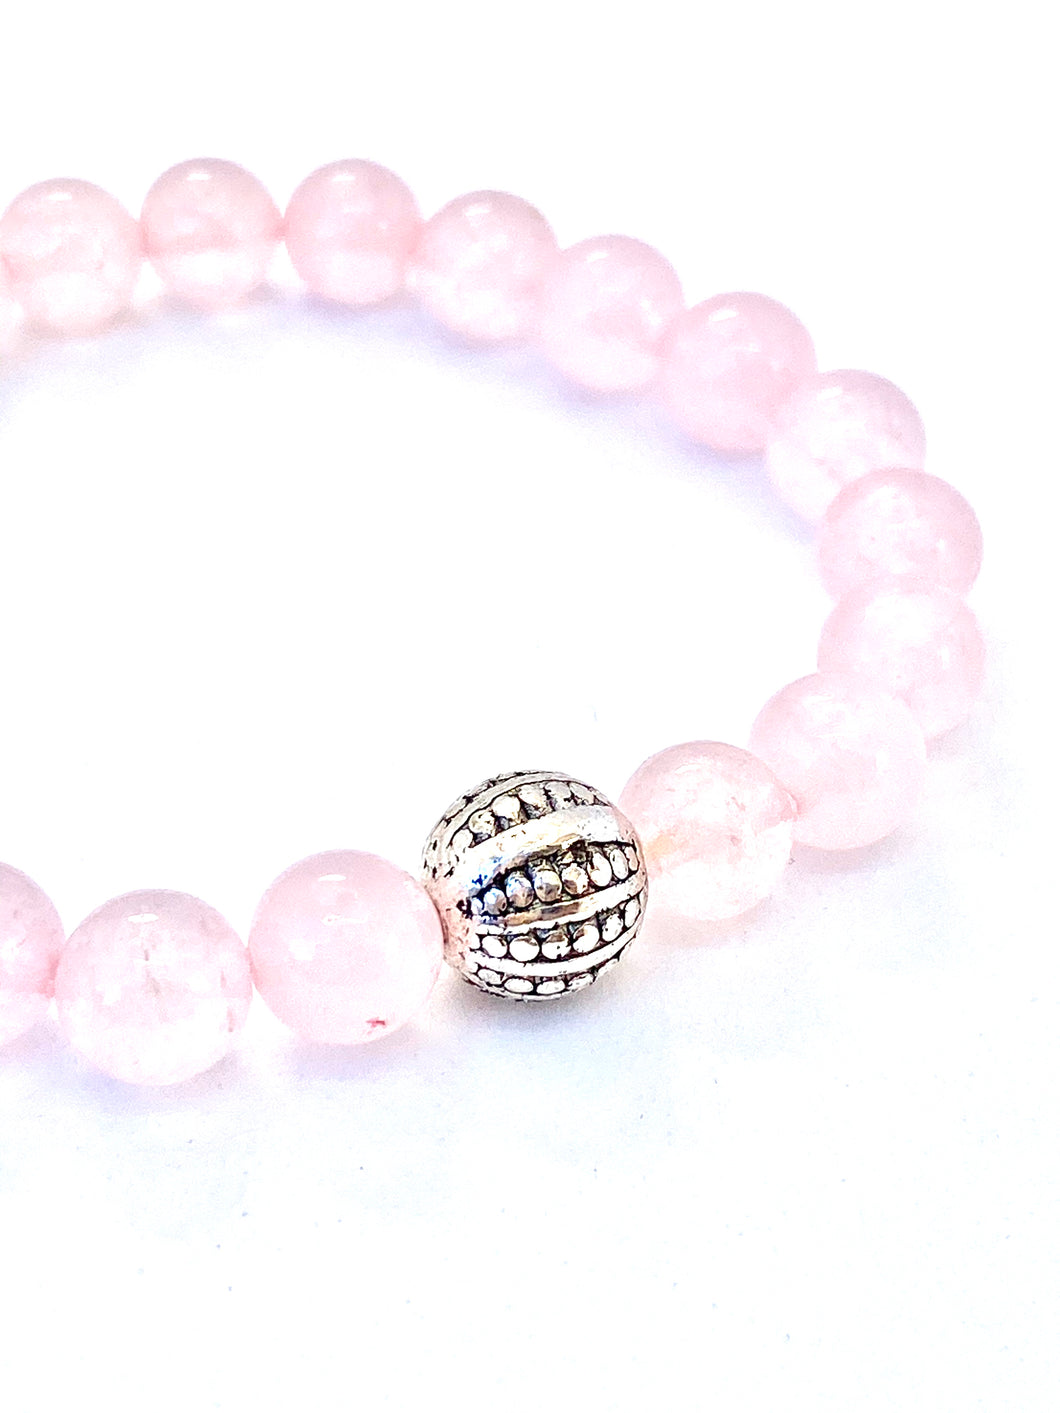 Rose Quartz Mala Bracelet. Love Bracelet. Pink Bracelet. Stretch Healing Bracelet. Yoga Jewelry for Women.